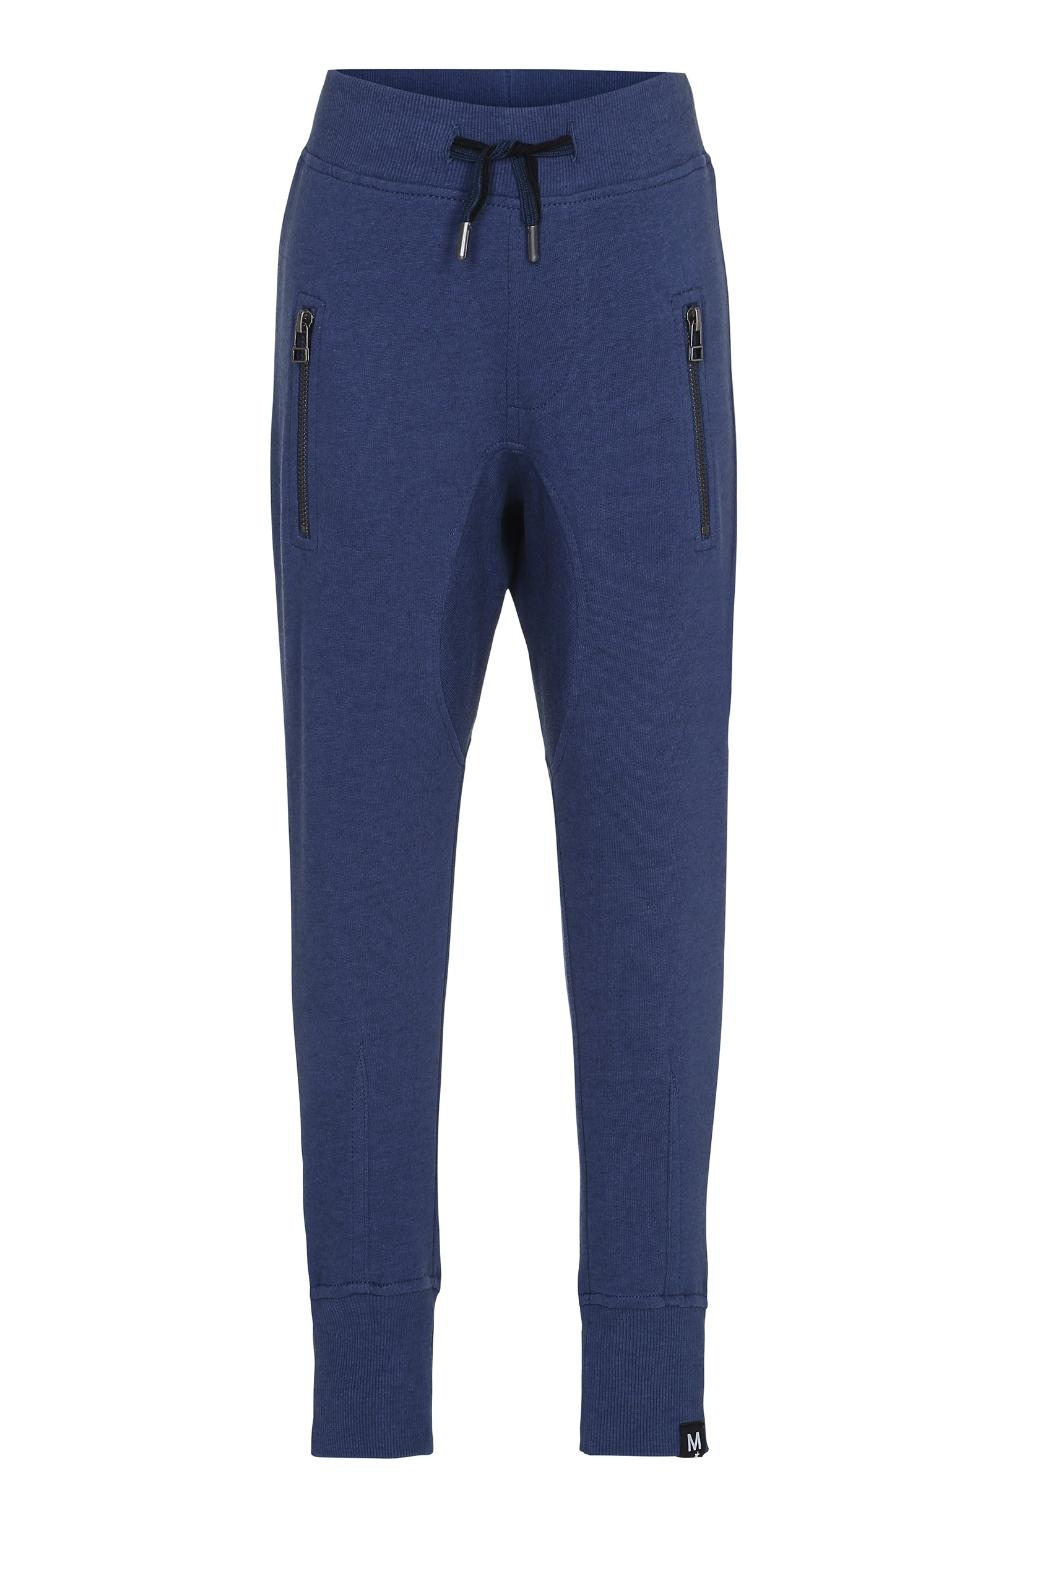 Molo Ashton Infinity Trousers - Front Cropped Image